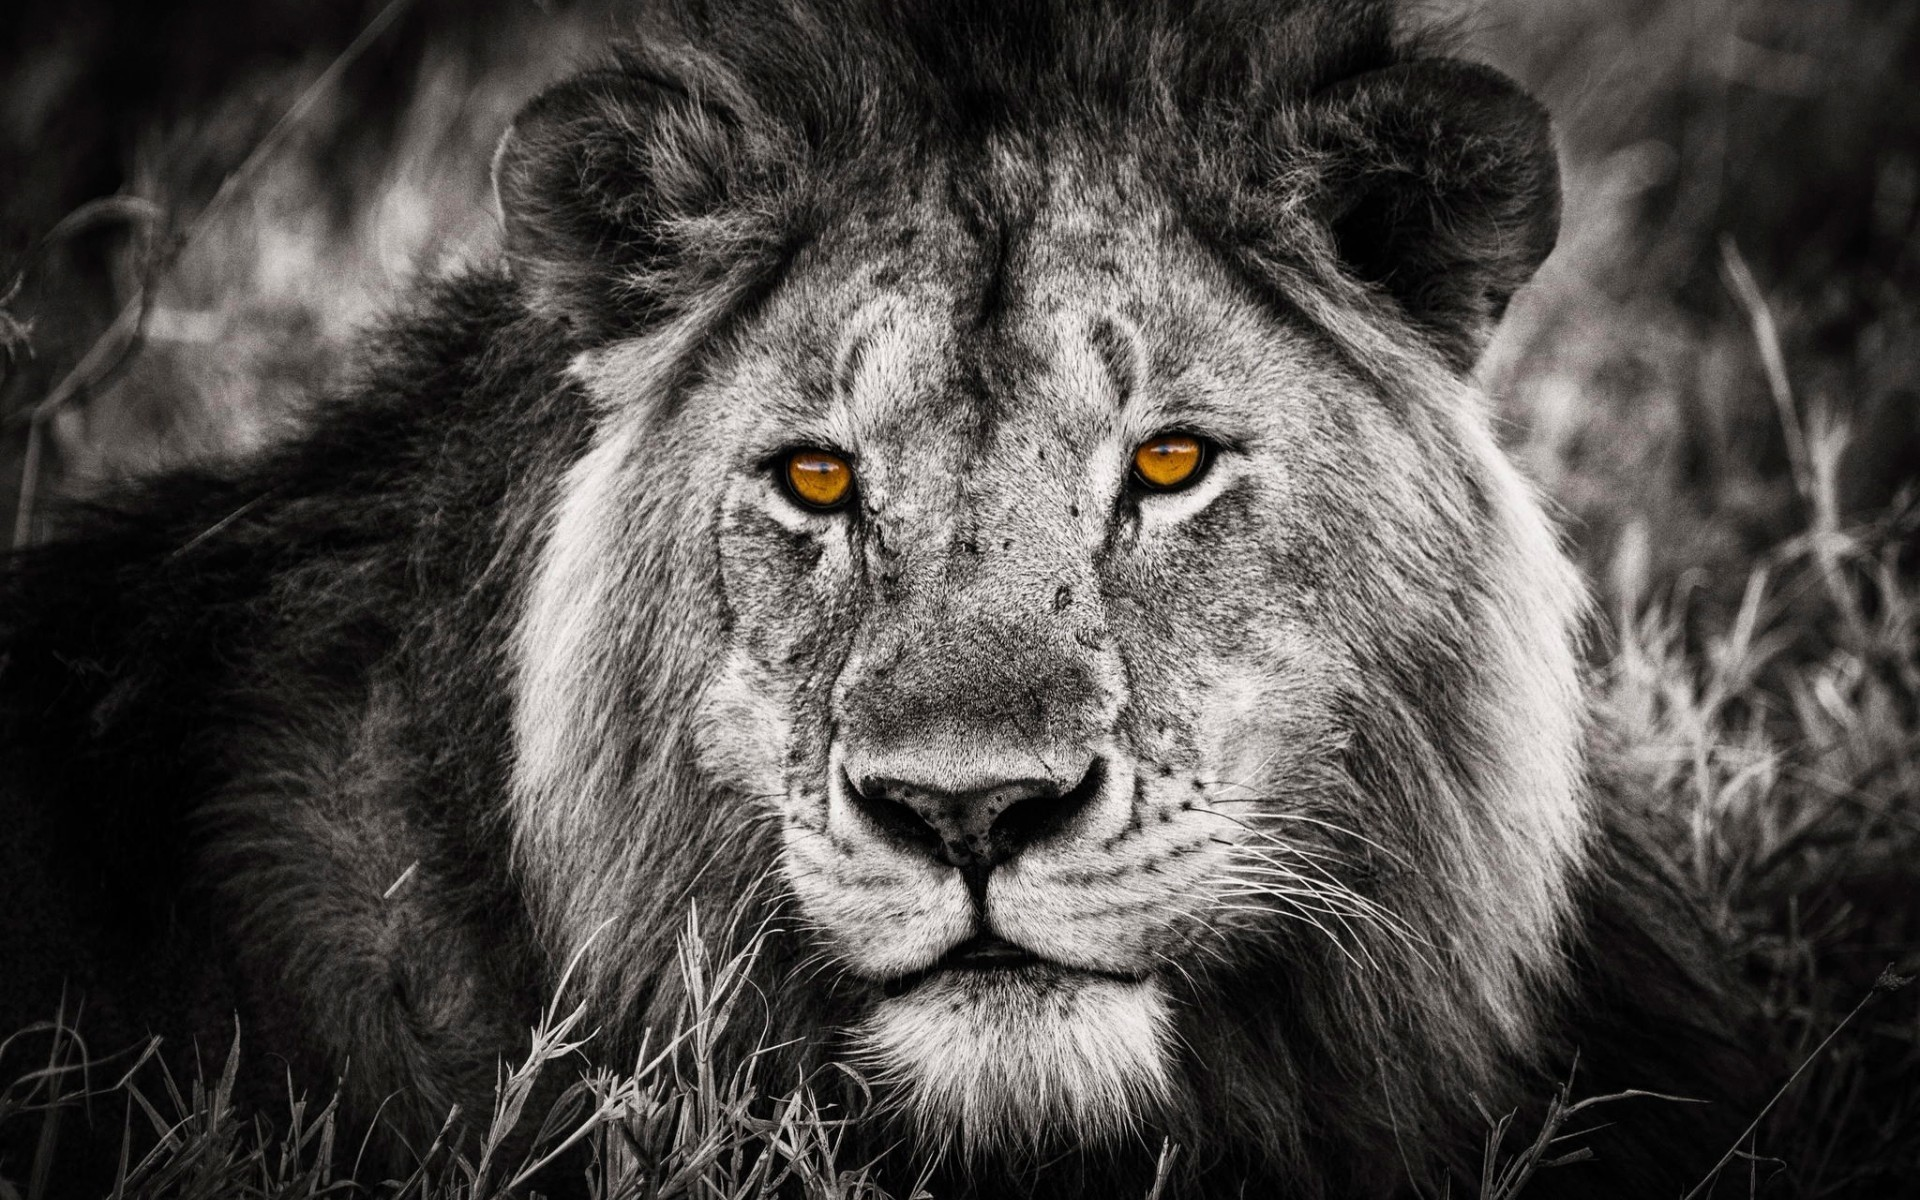 Angry lion wallpaper hd black and white